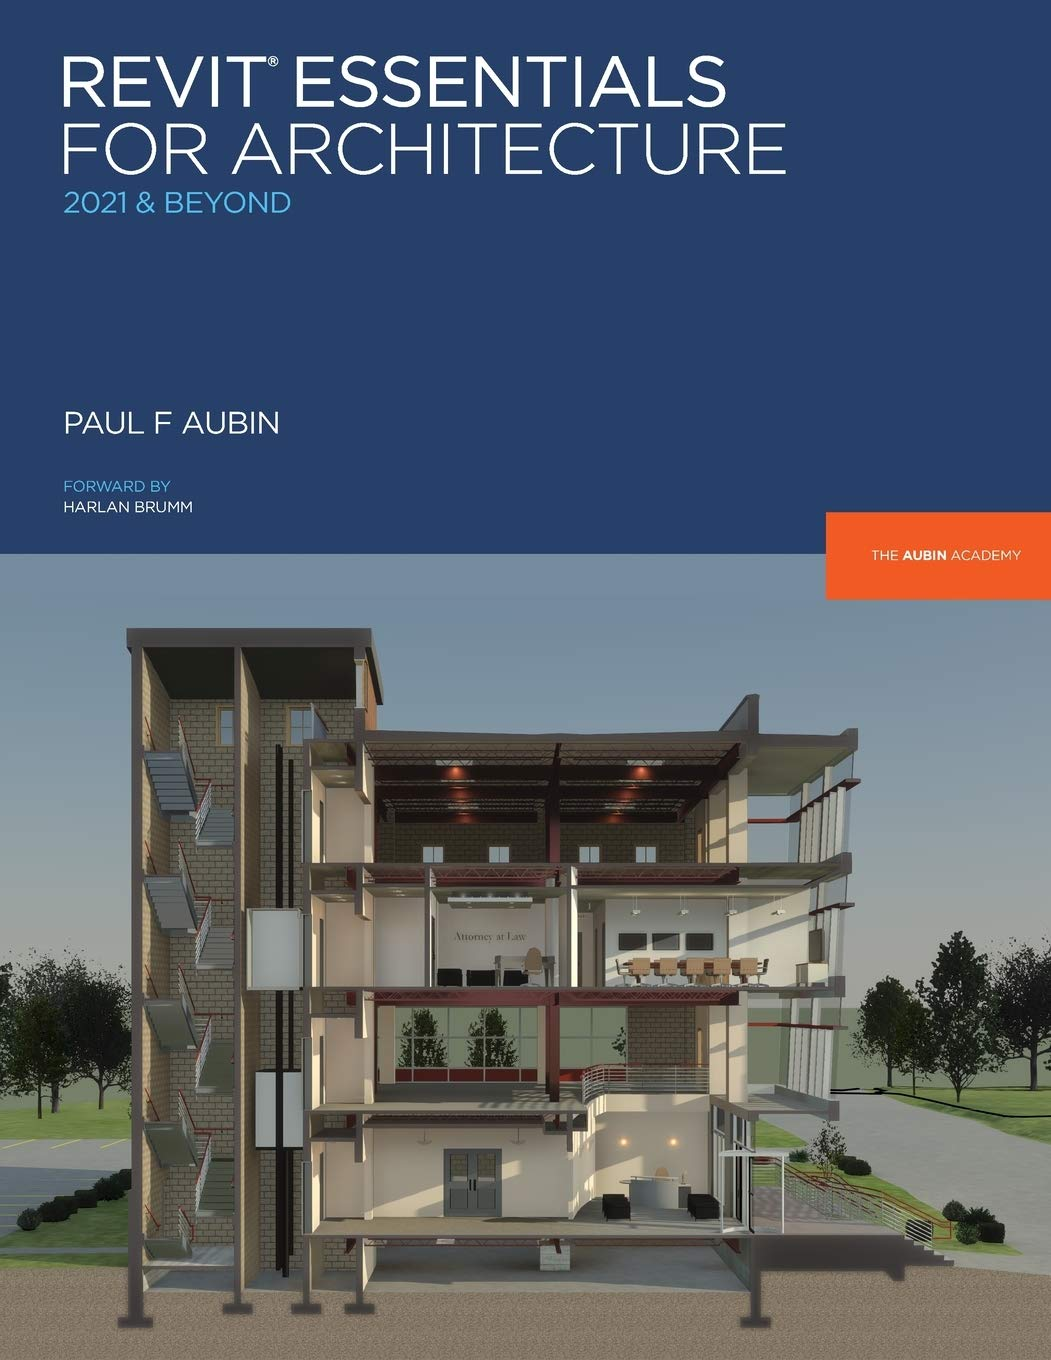 Revit Essentials for Architecture: 2021 and beyond Aubin Academy: Amazon.es: Aubin, Paul F, Mackey, Desirée P, Brumm, Harlan: Libros en idiomas extranjeros